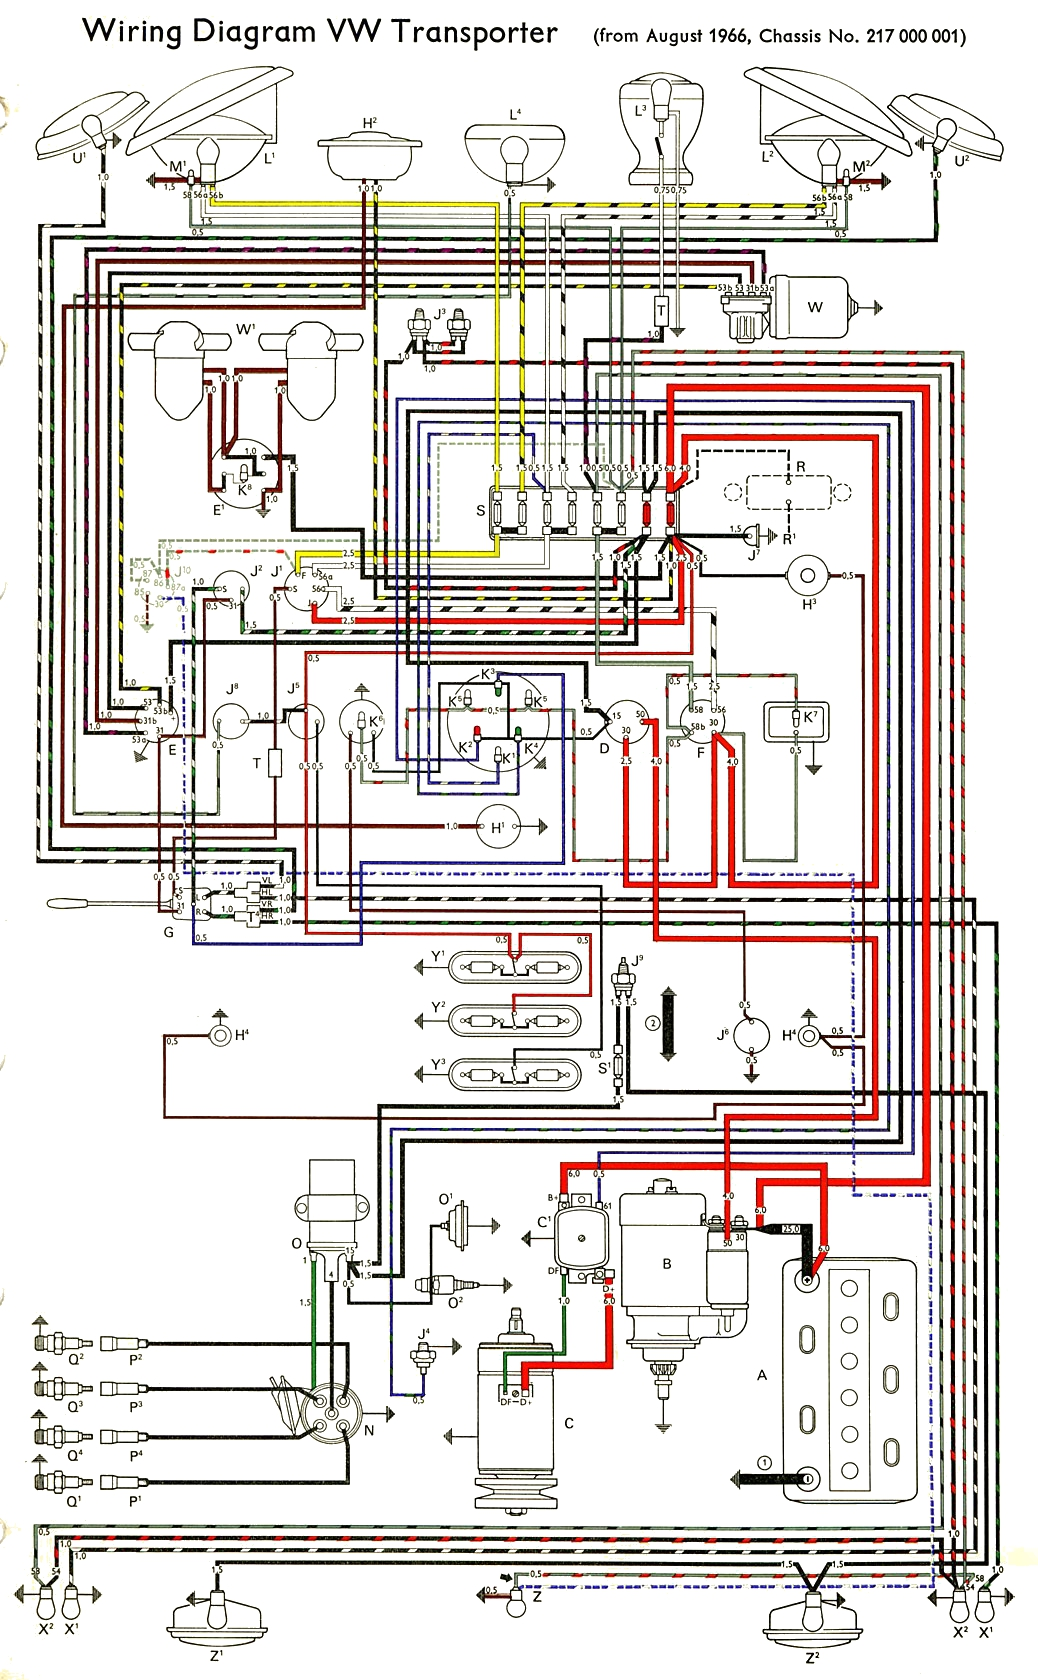 1973 Volkswagen Wiring Diagram - Electrical Drawing Wiring Diagram on voltage regulator wiring diagram, 1973 volkswagen clutch, vw beetle wiring diagram, 1973 volkswagen ignition coil, 1972 volkswagen wiring diagram, vw engine wiring diagram, 1973 volkswagen voltage regulator, 1973 volkswagen parts, 1973 volkswagen heater diagram,